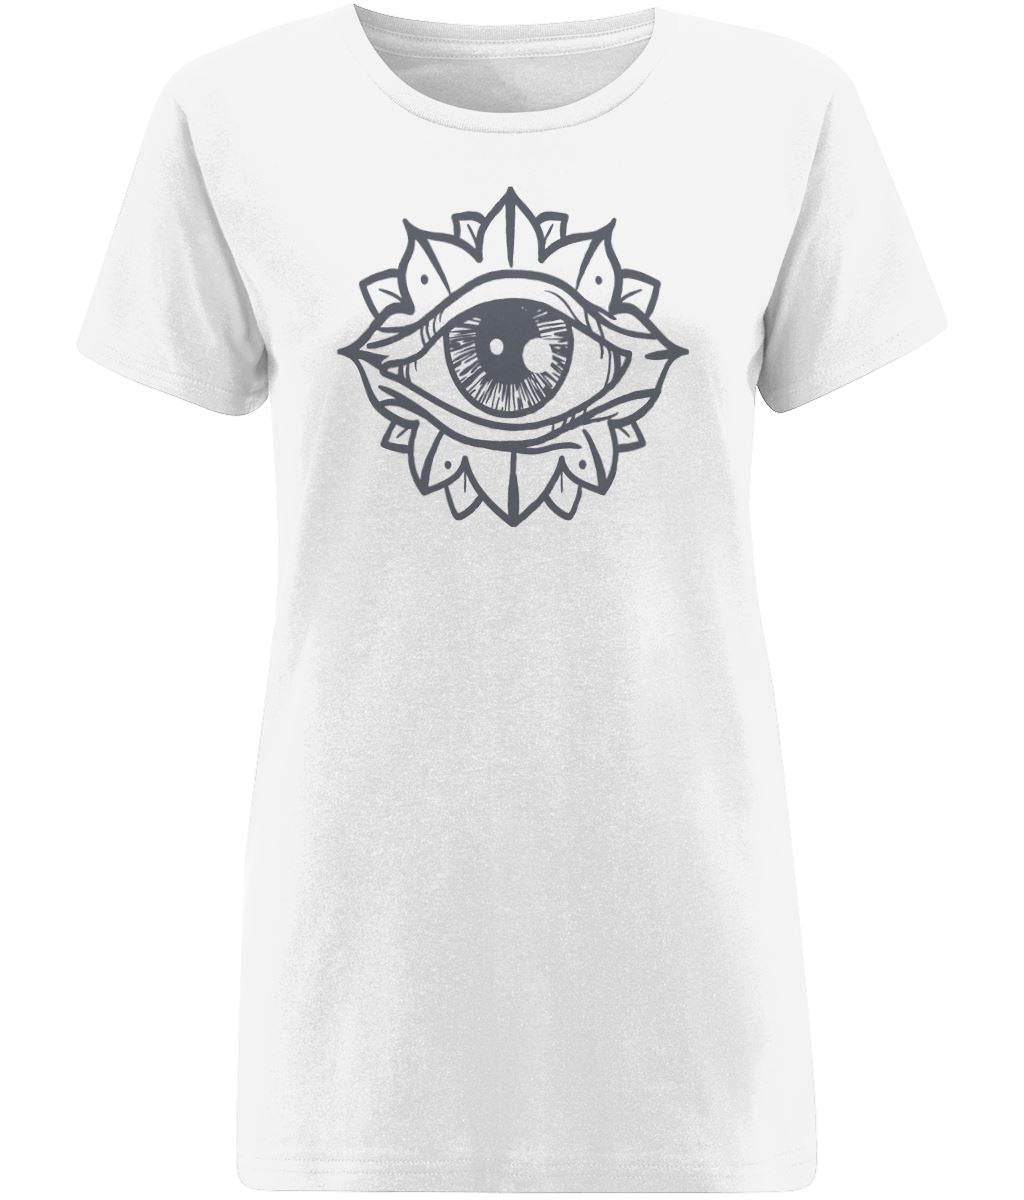 Eye Flower T-shirt Clothing IndianBelieves X-Small White